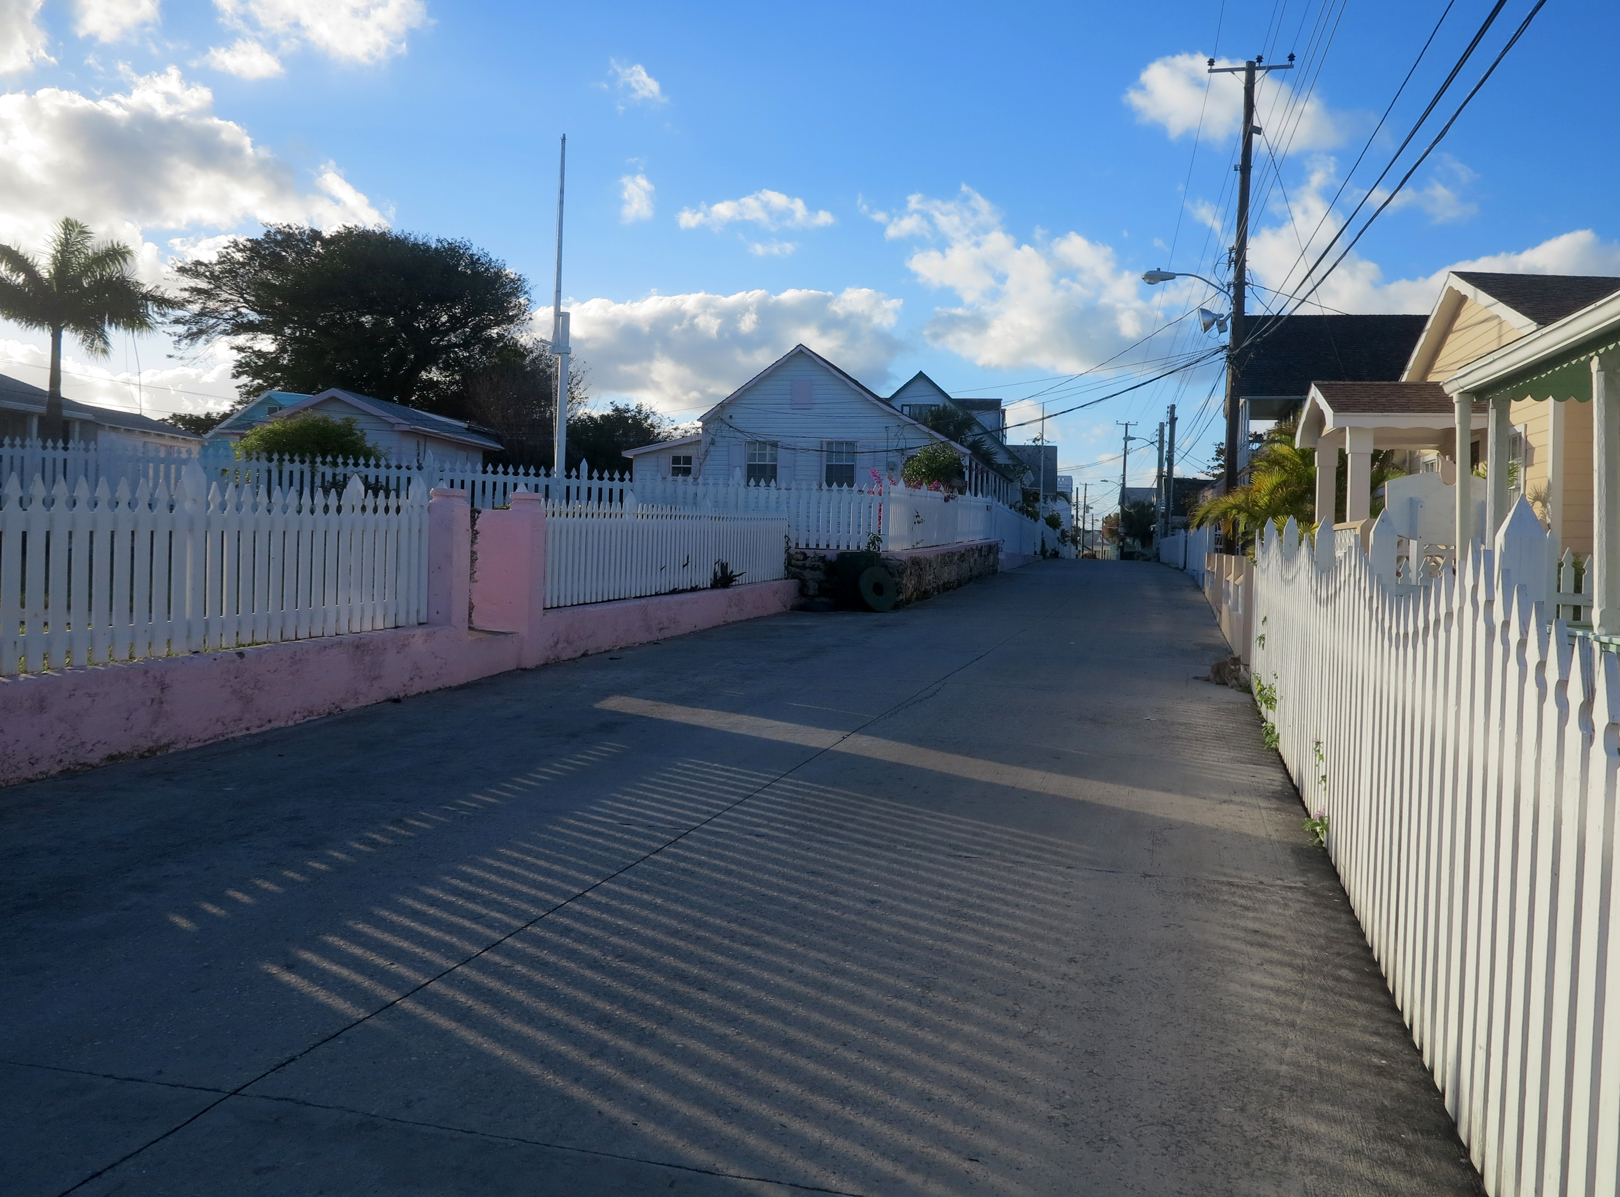 Parliament Street, Green Turtle Cay